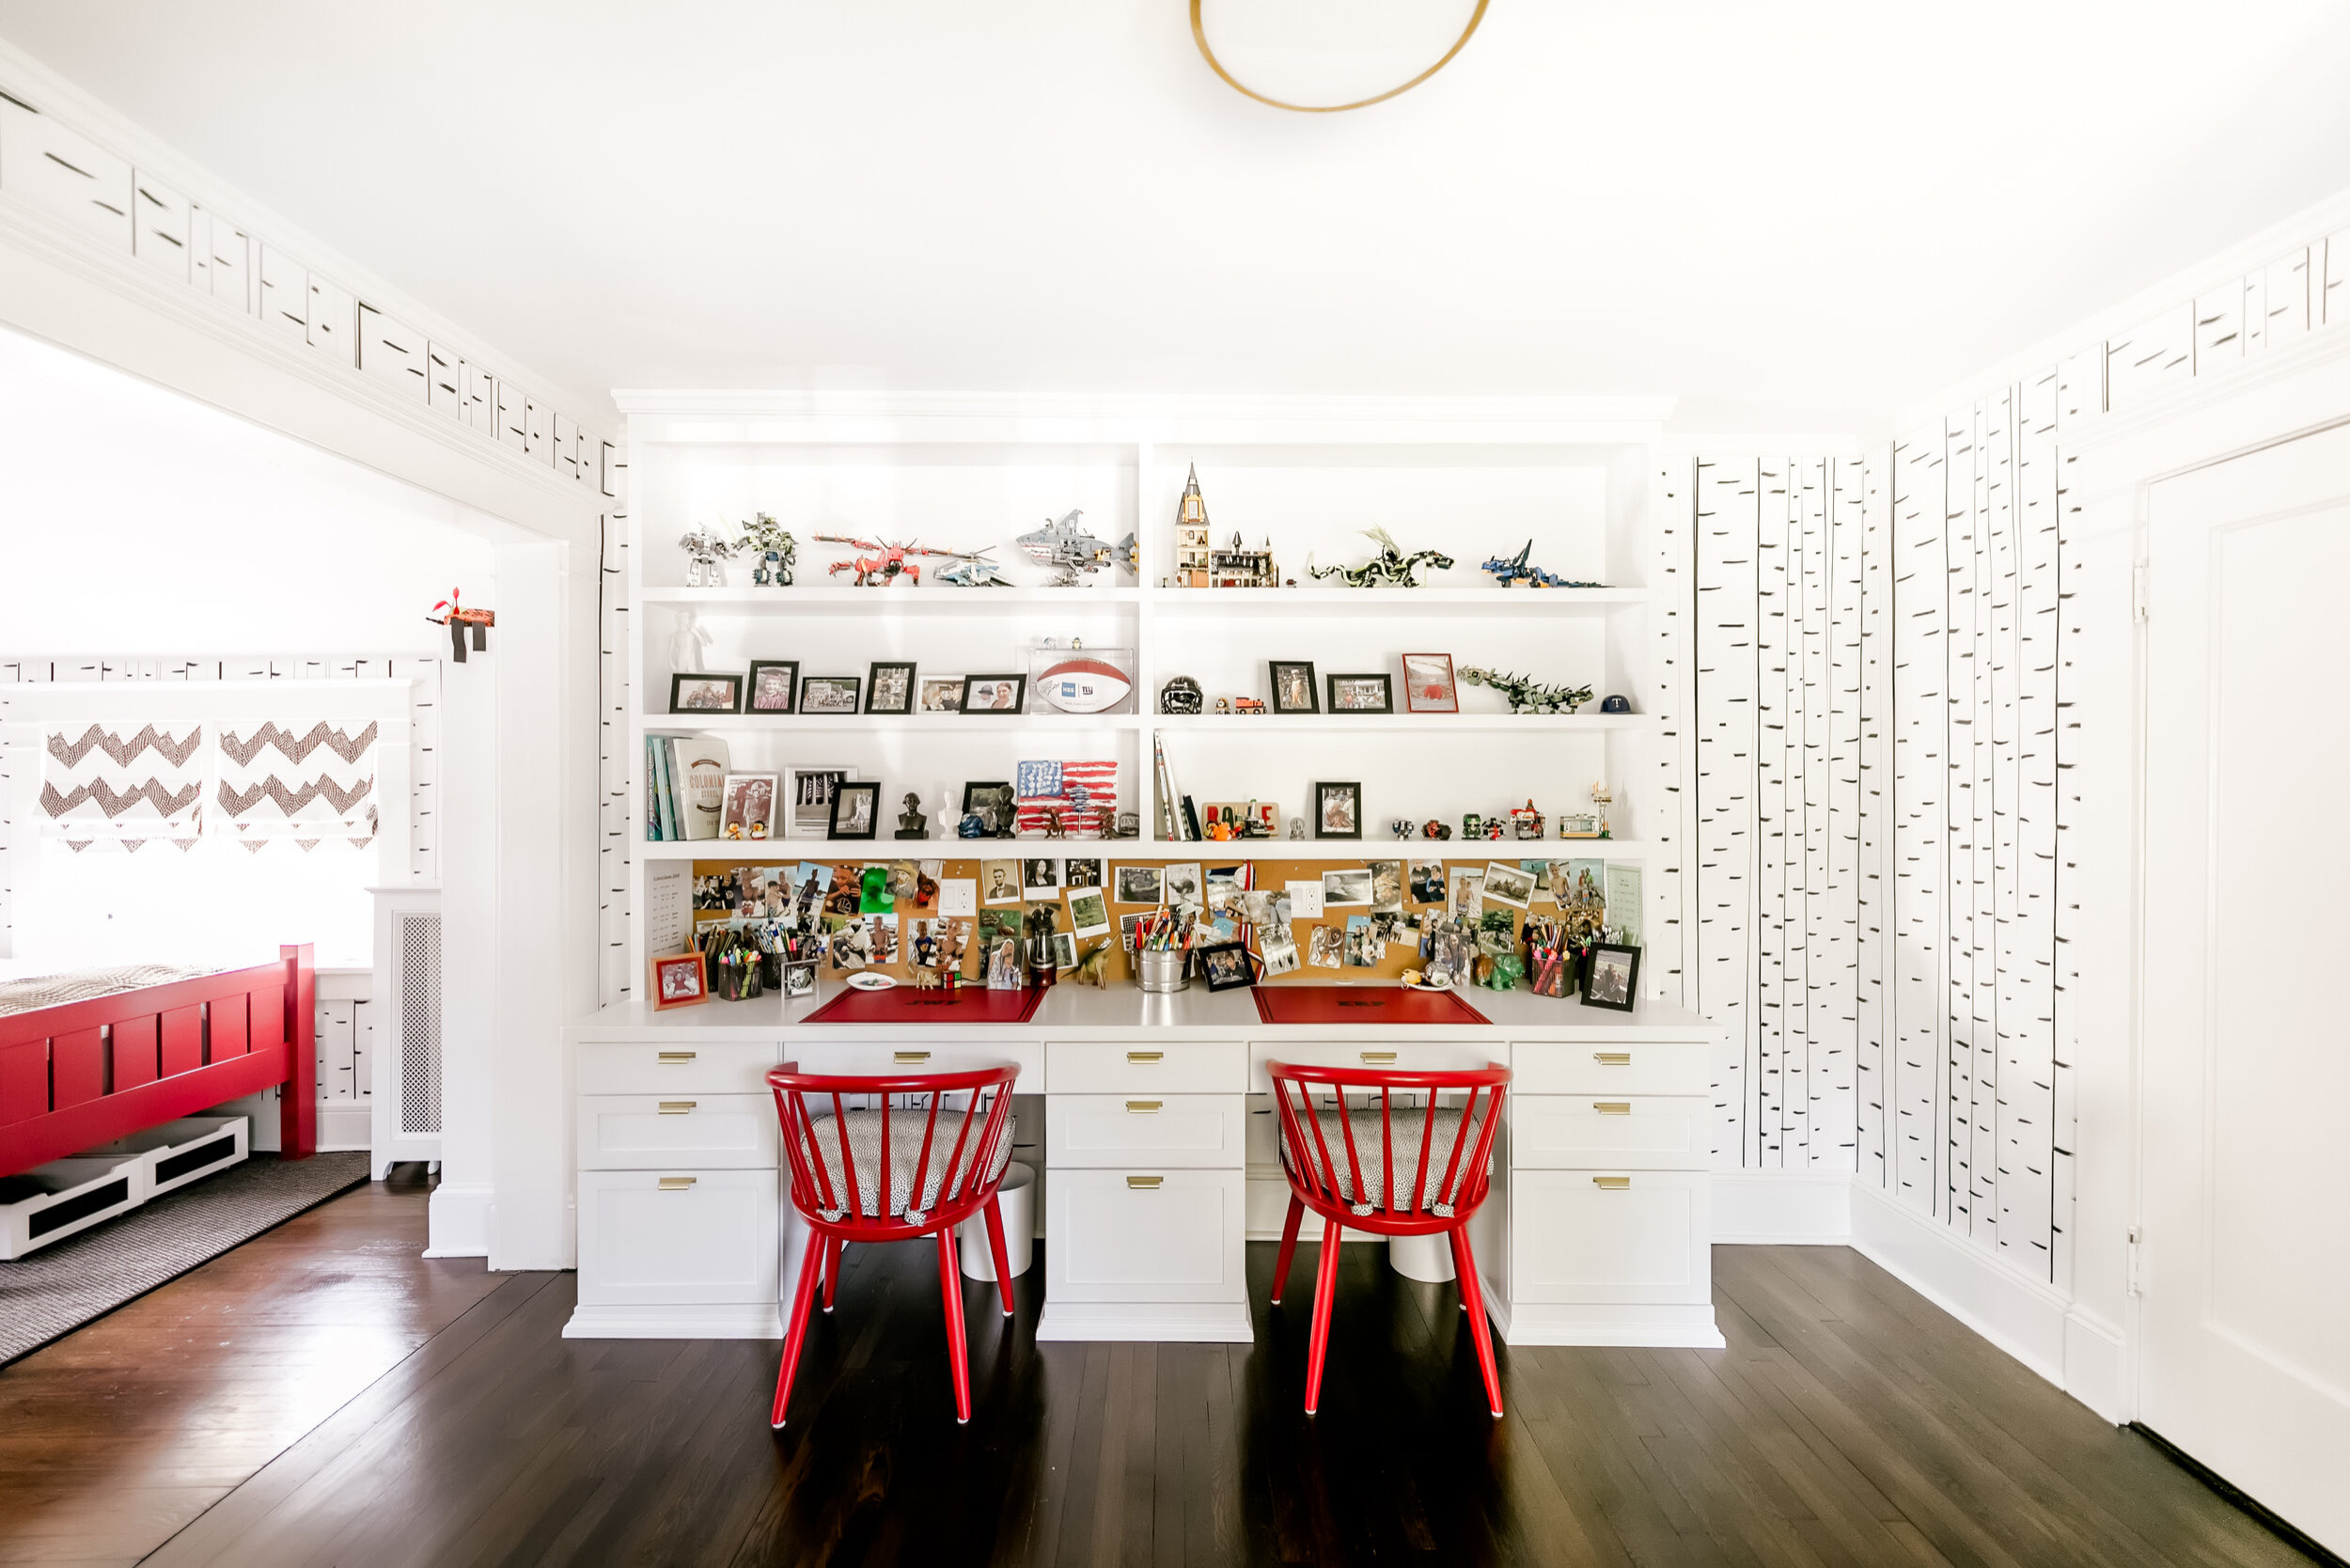 75 Beautiful Kids Room Pictures Ideas February 2021 Houzz